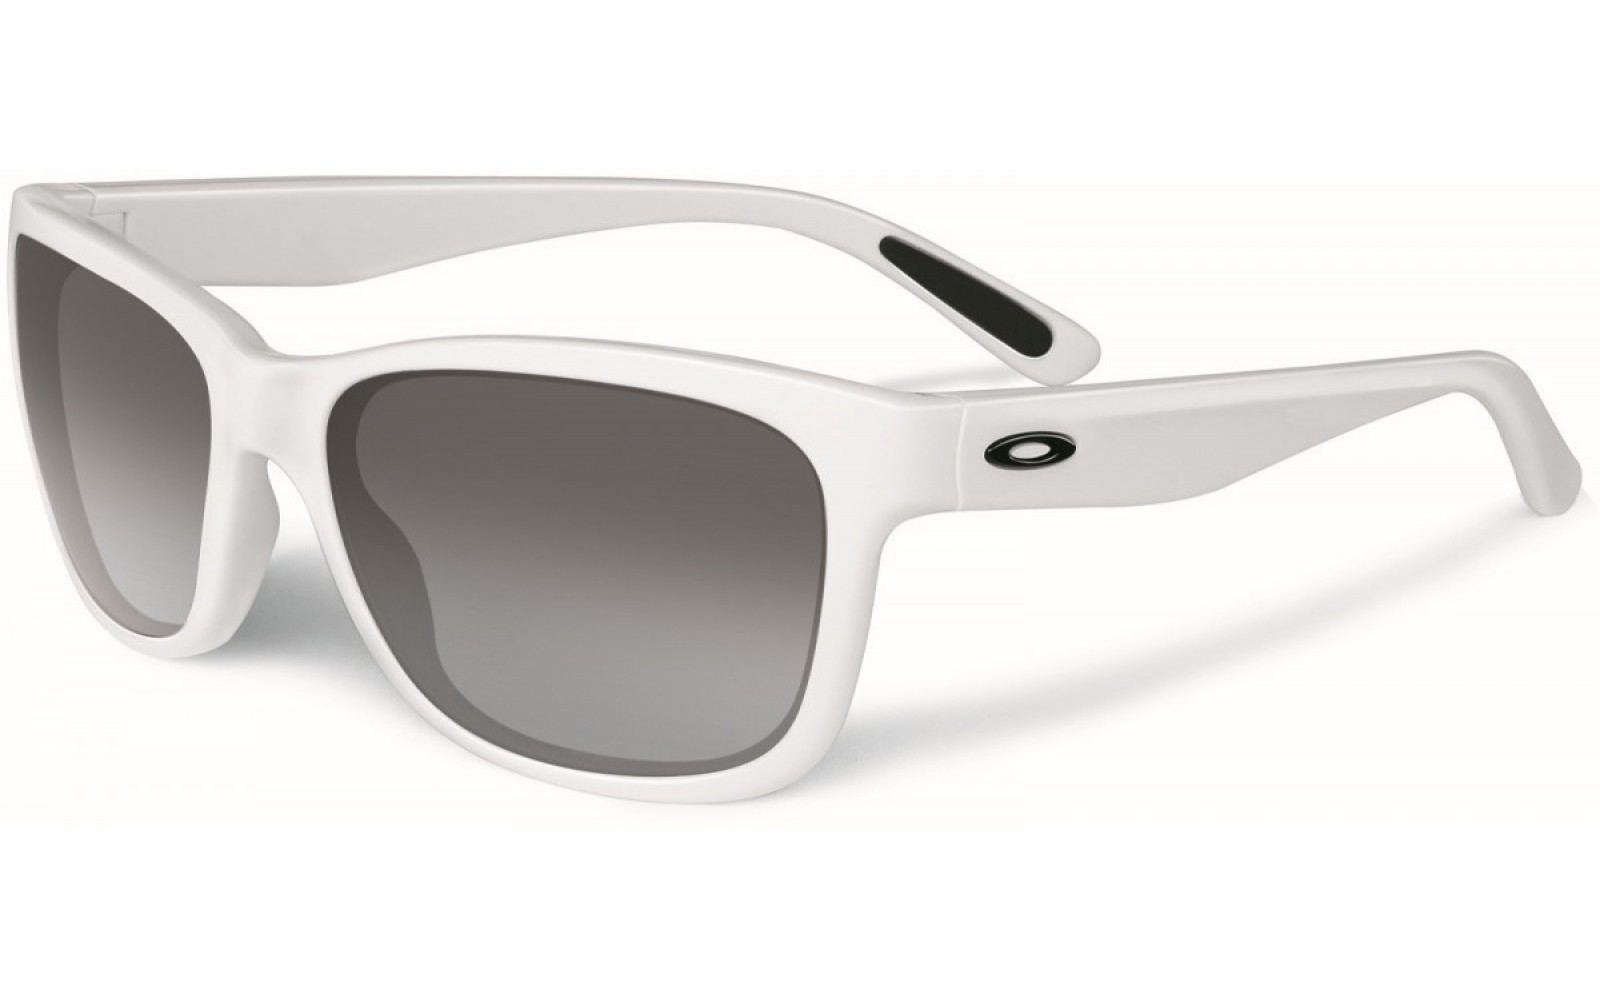 Oakley Forehand - Polished White / Black Grey Gradient - OO9179-02 Zonnebril